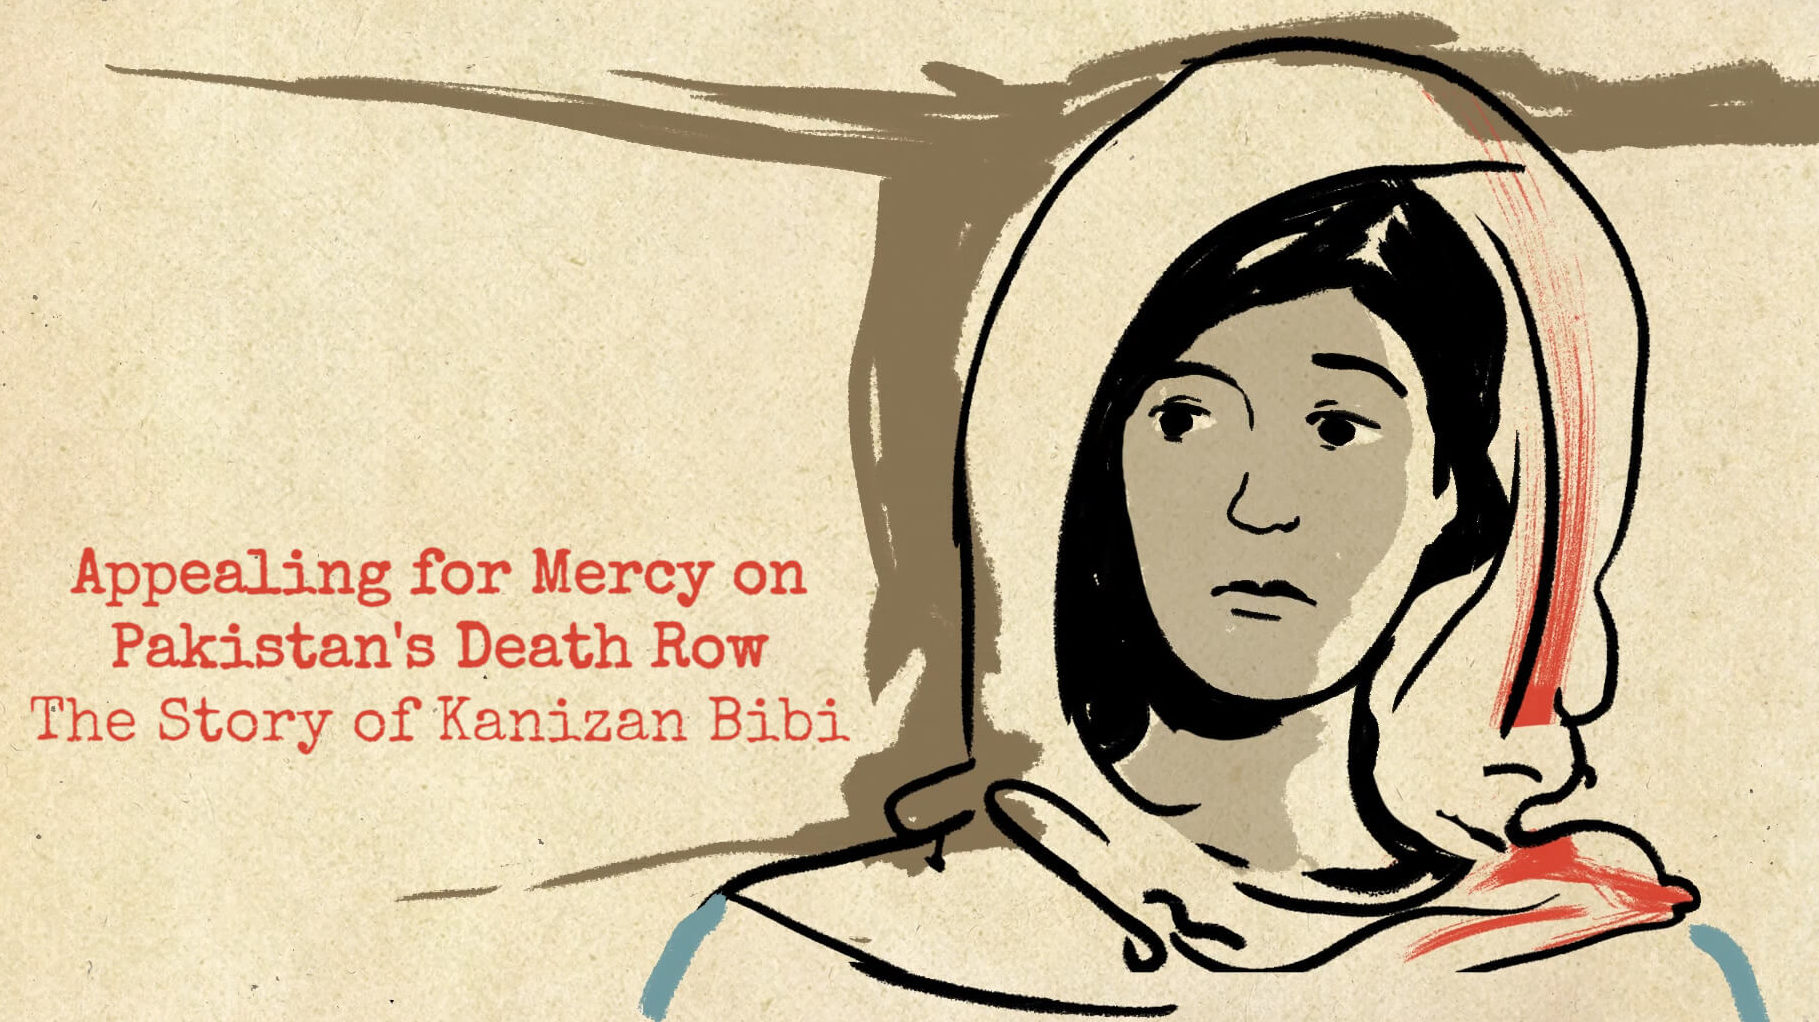 Appealing for Mercy on Pakistan's Death Row: The Story of Kanizan Bibi